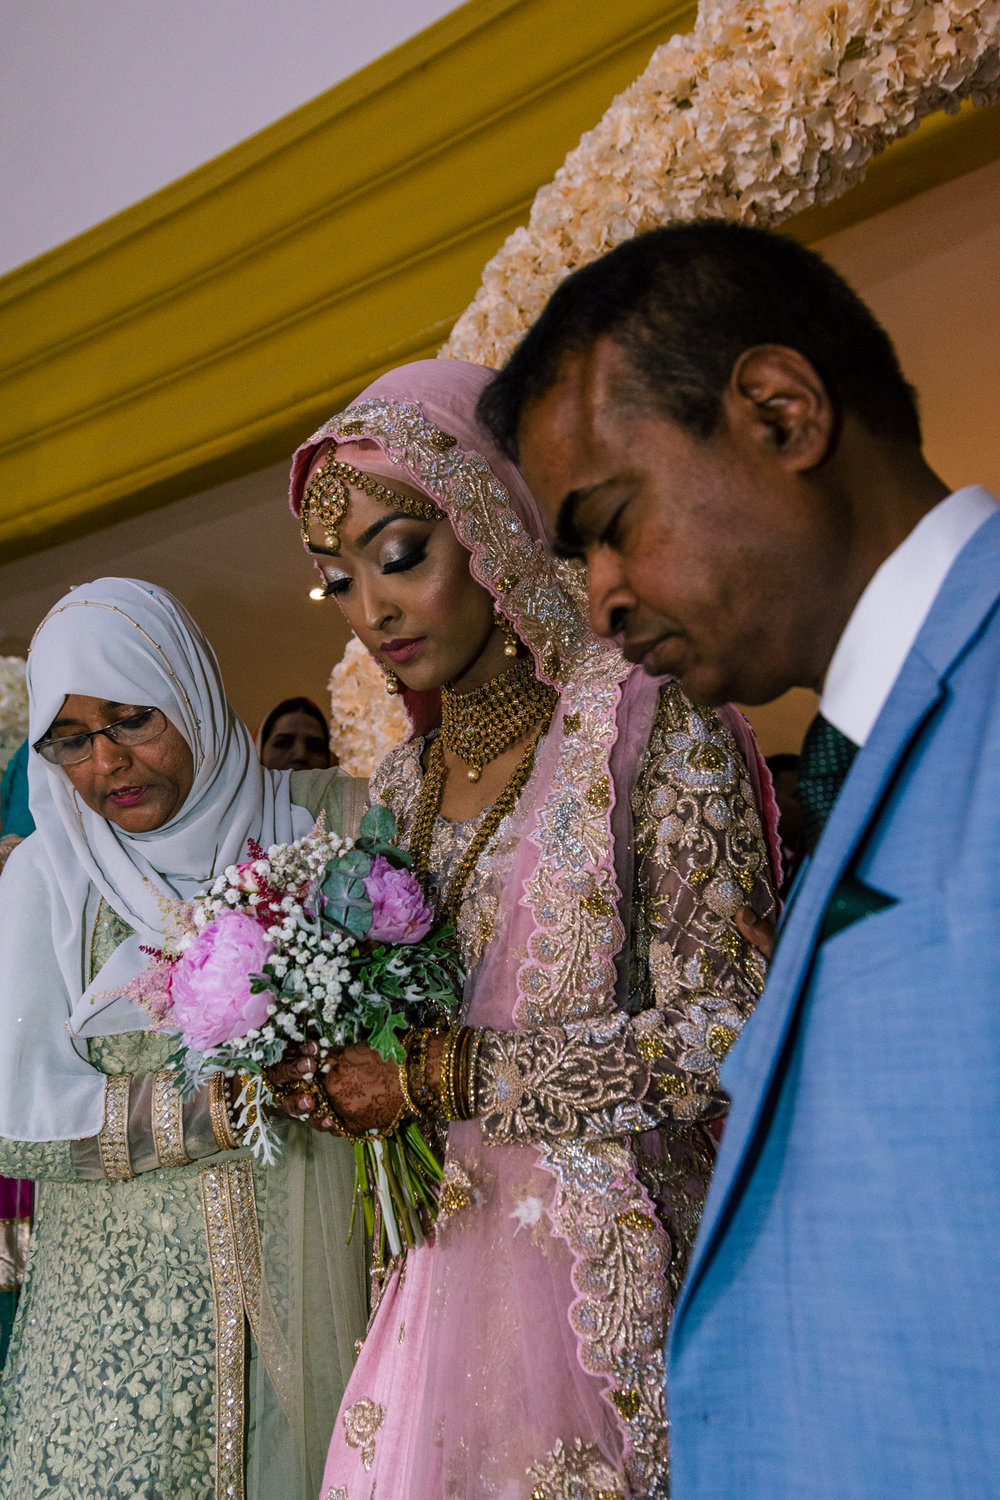 an emotional indian bride dressed in pink and gold with her father who is dressed in a stunning blue suit